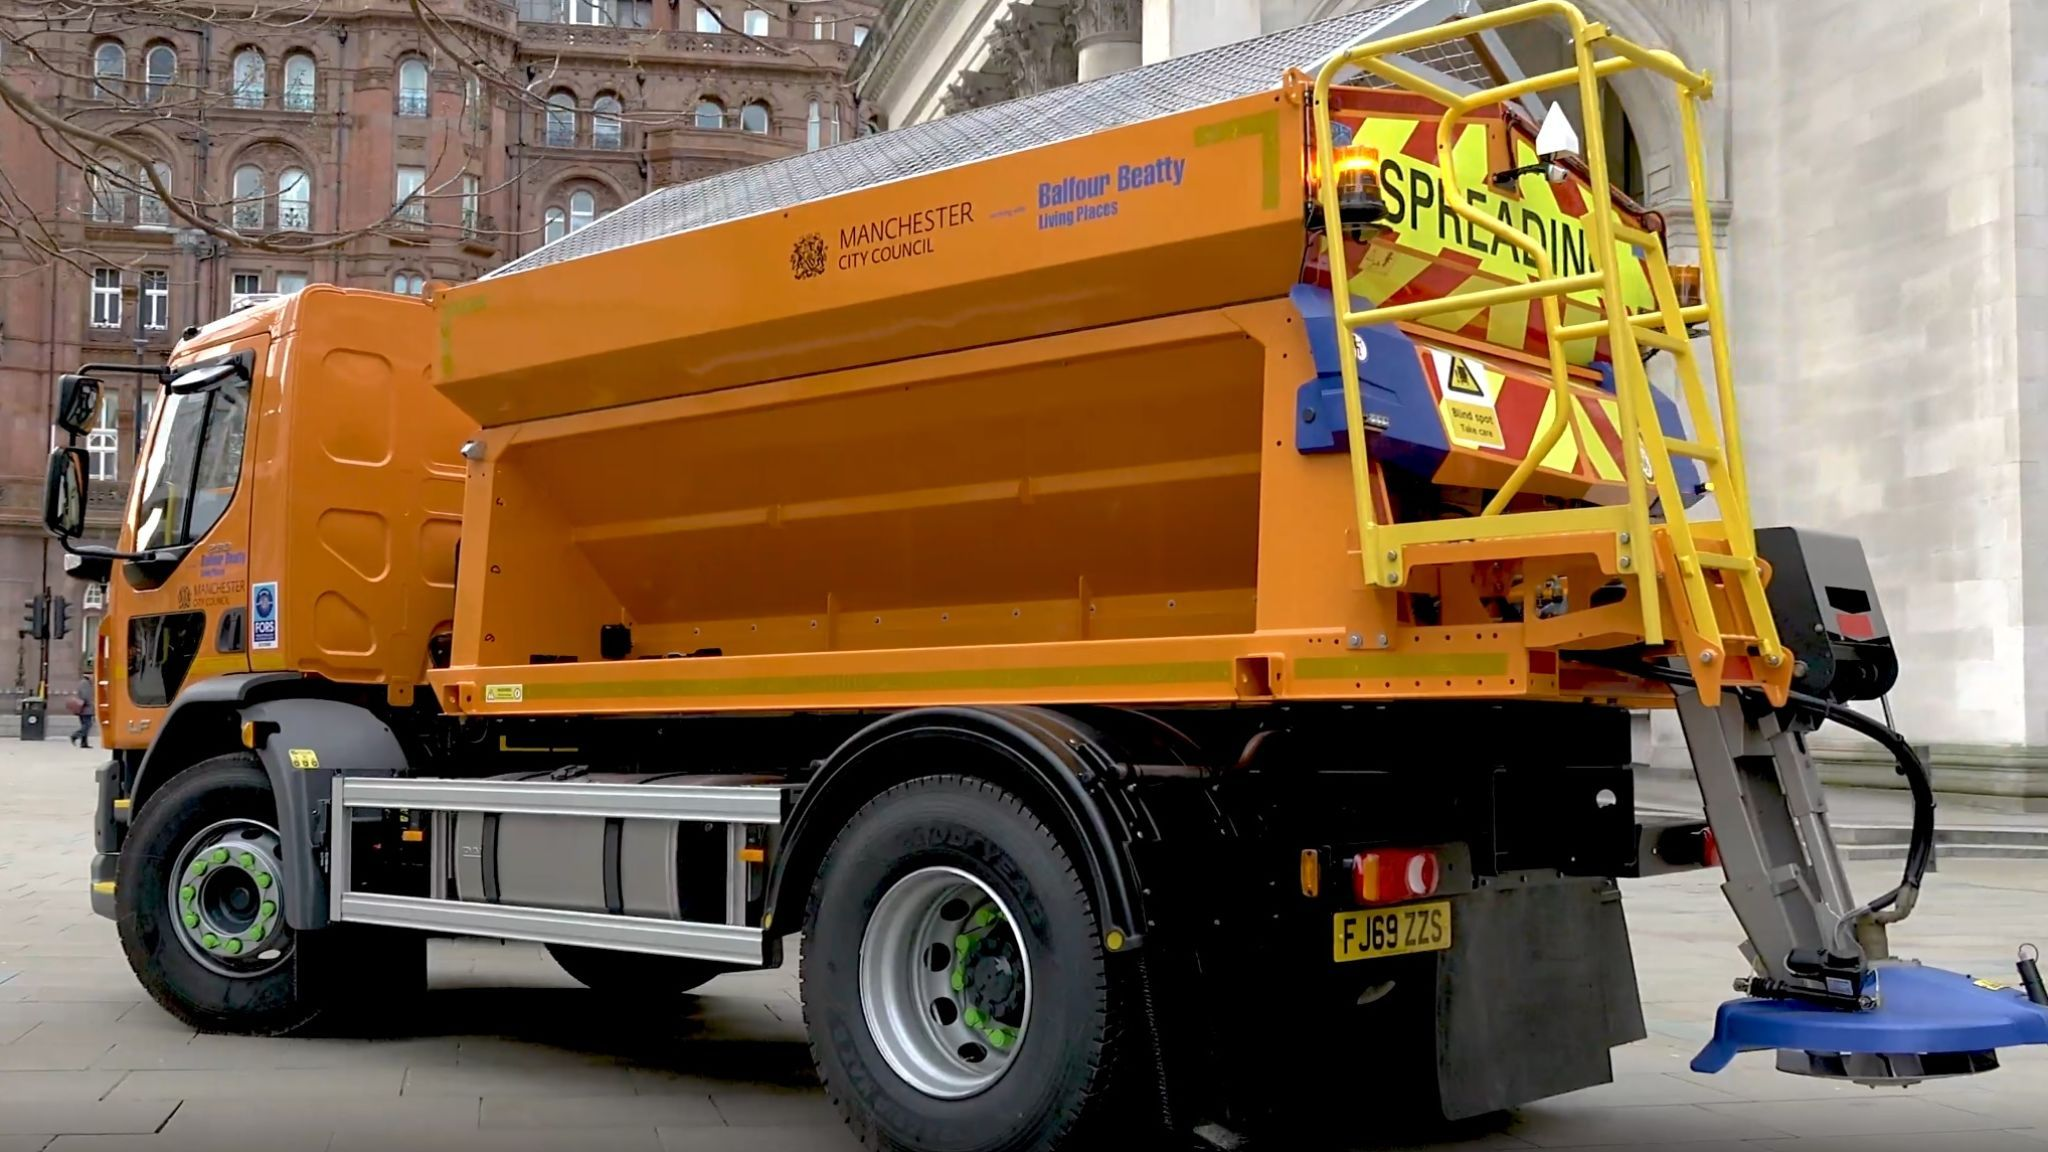 Residents will be able to 'Ask Alexa' if the gritters have been in their area